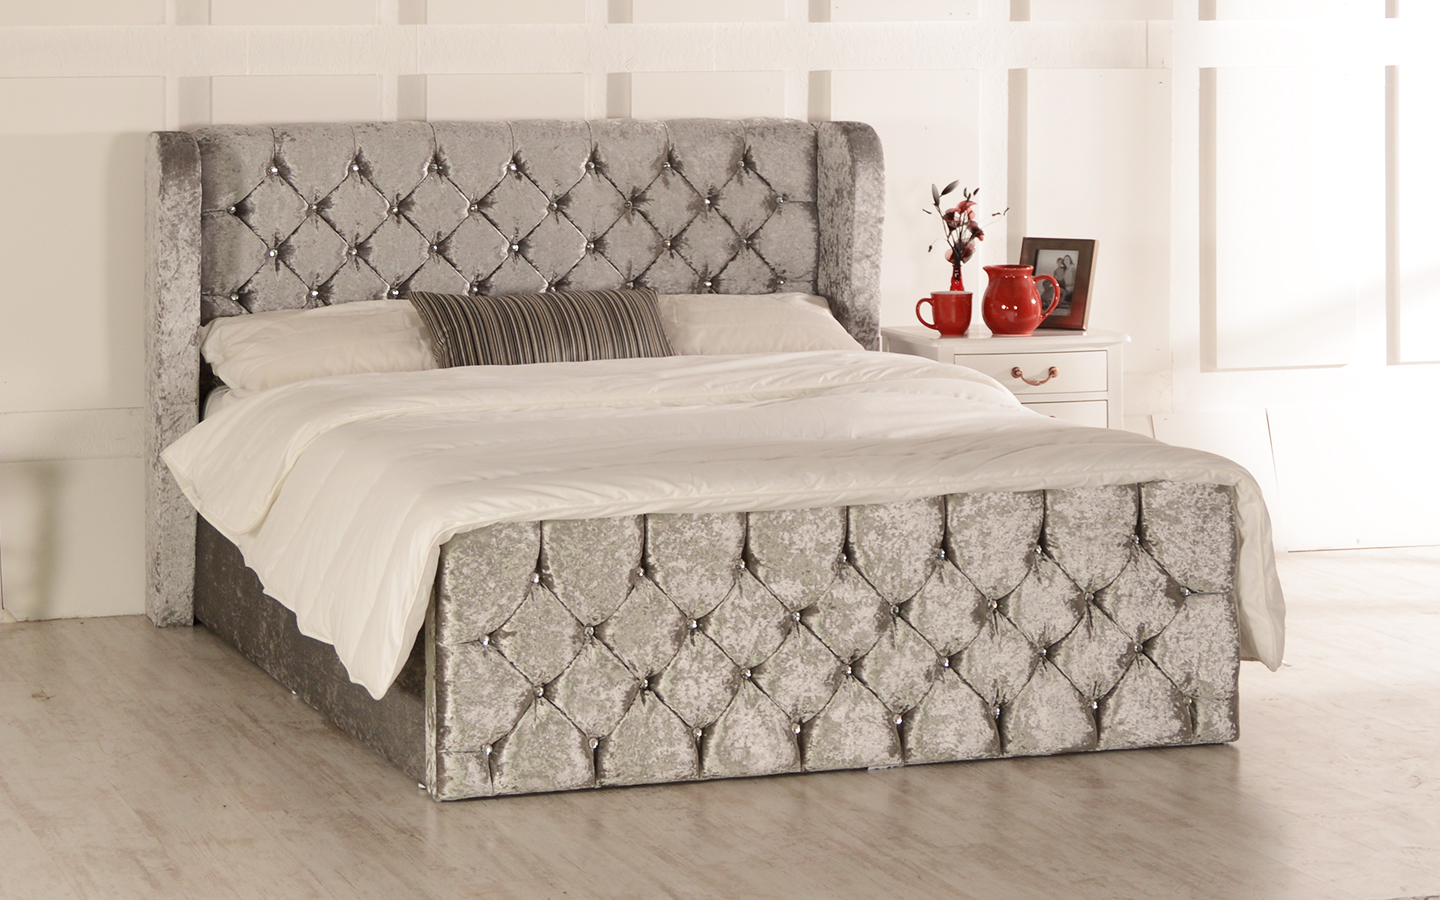 Picture of: Ottoman Beds Fabric Beds Mattresses Double Single King E Supa Saver